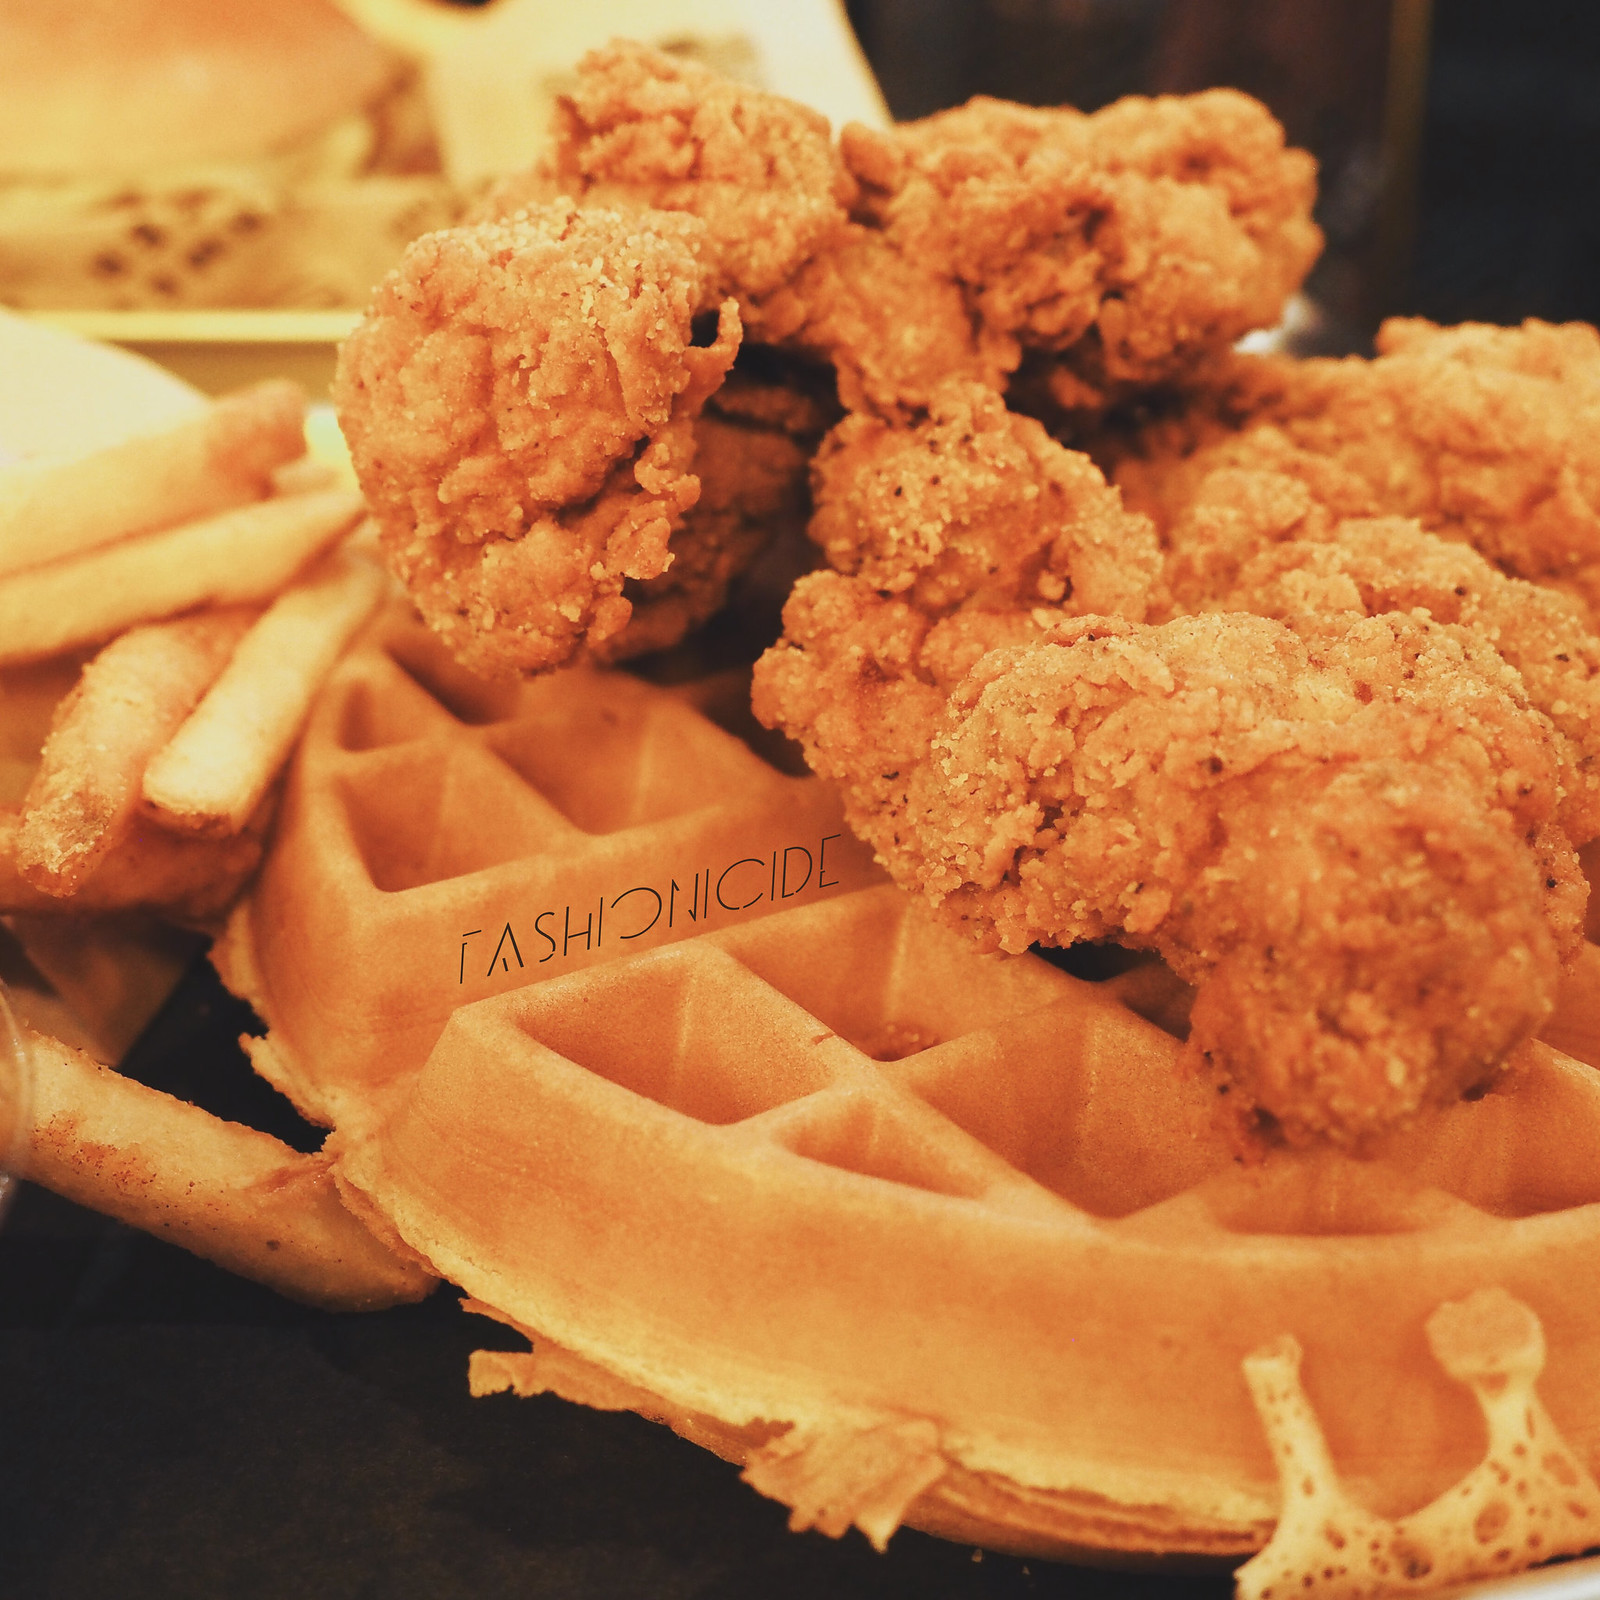 Halal American Buttermilk Dirty Chicken Waffle New Yorker Diner